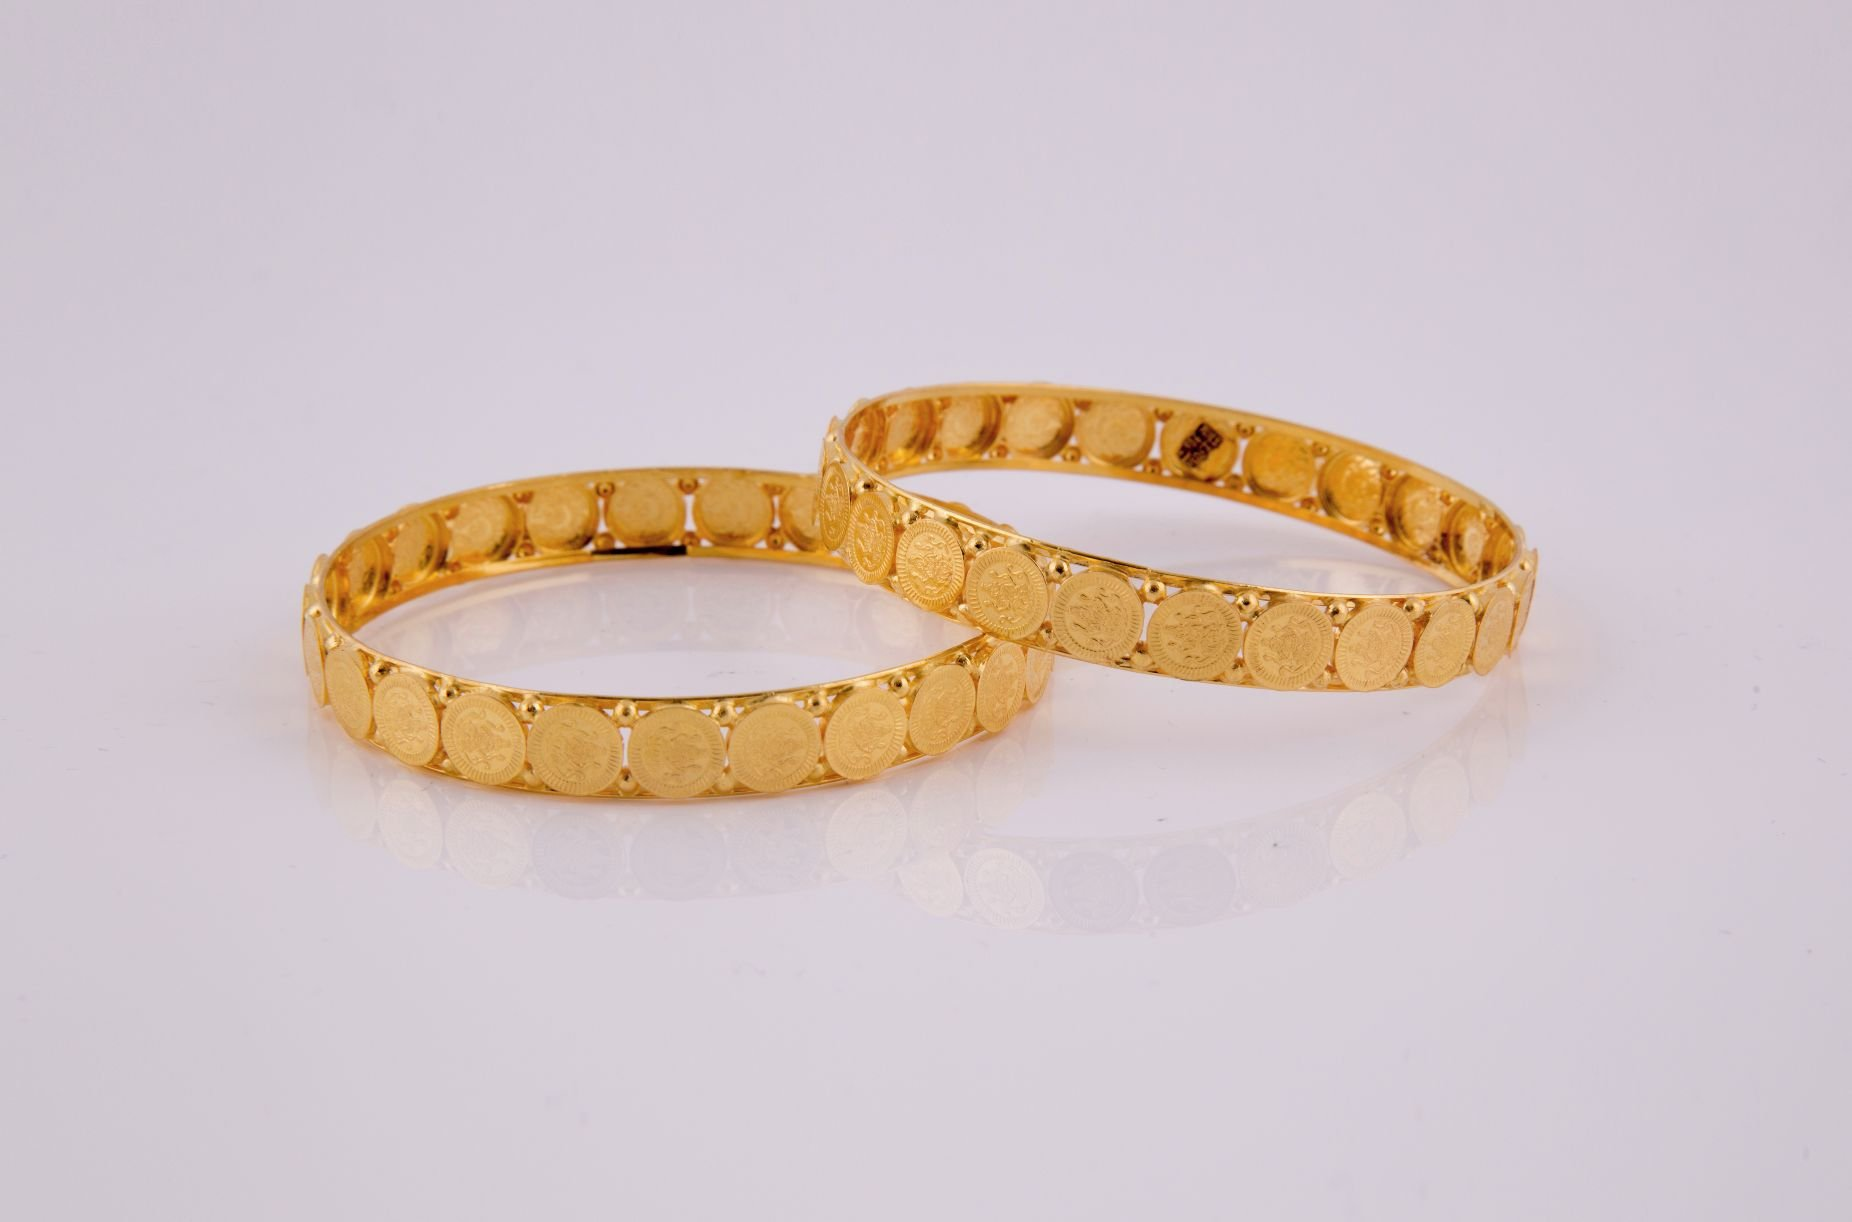 com plain intertwined welcome collections gold to kids chennaijeweller bangles bracelet bangle